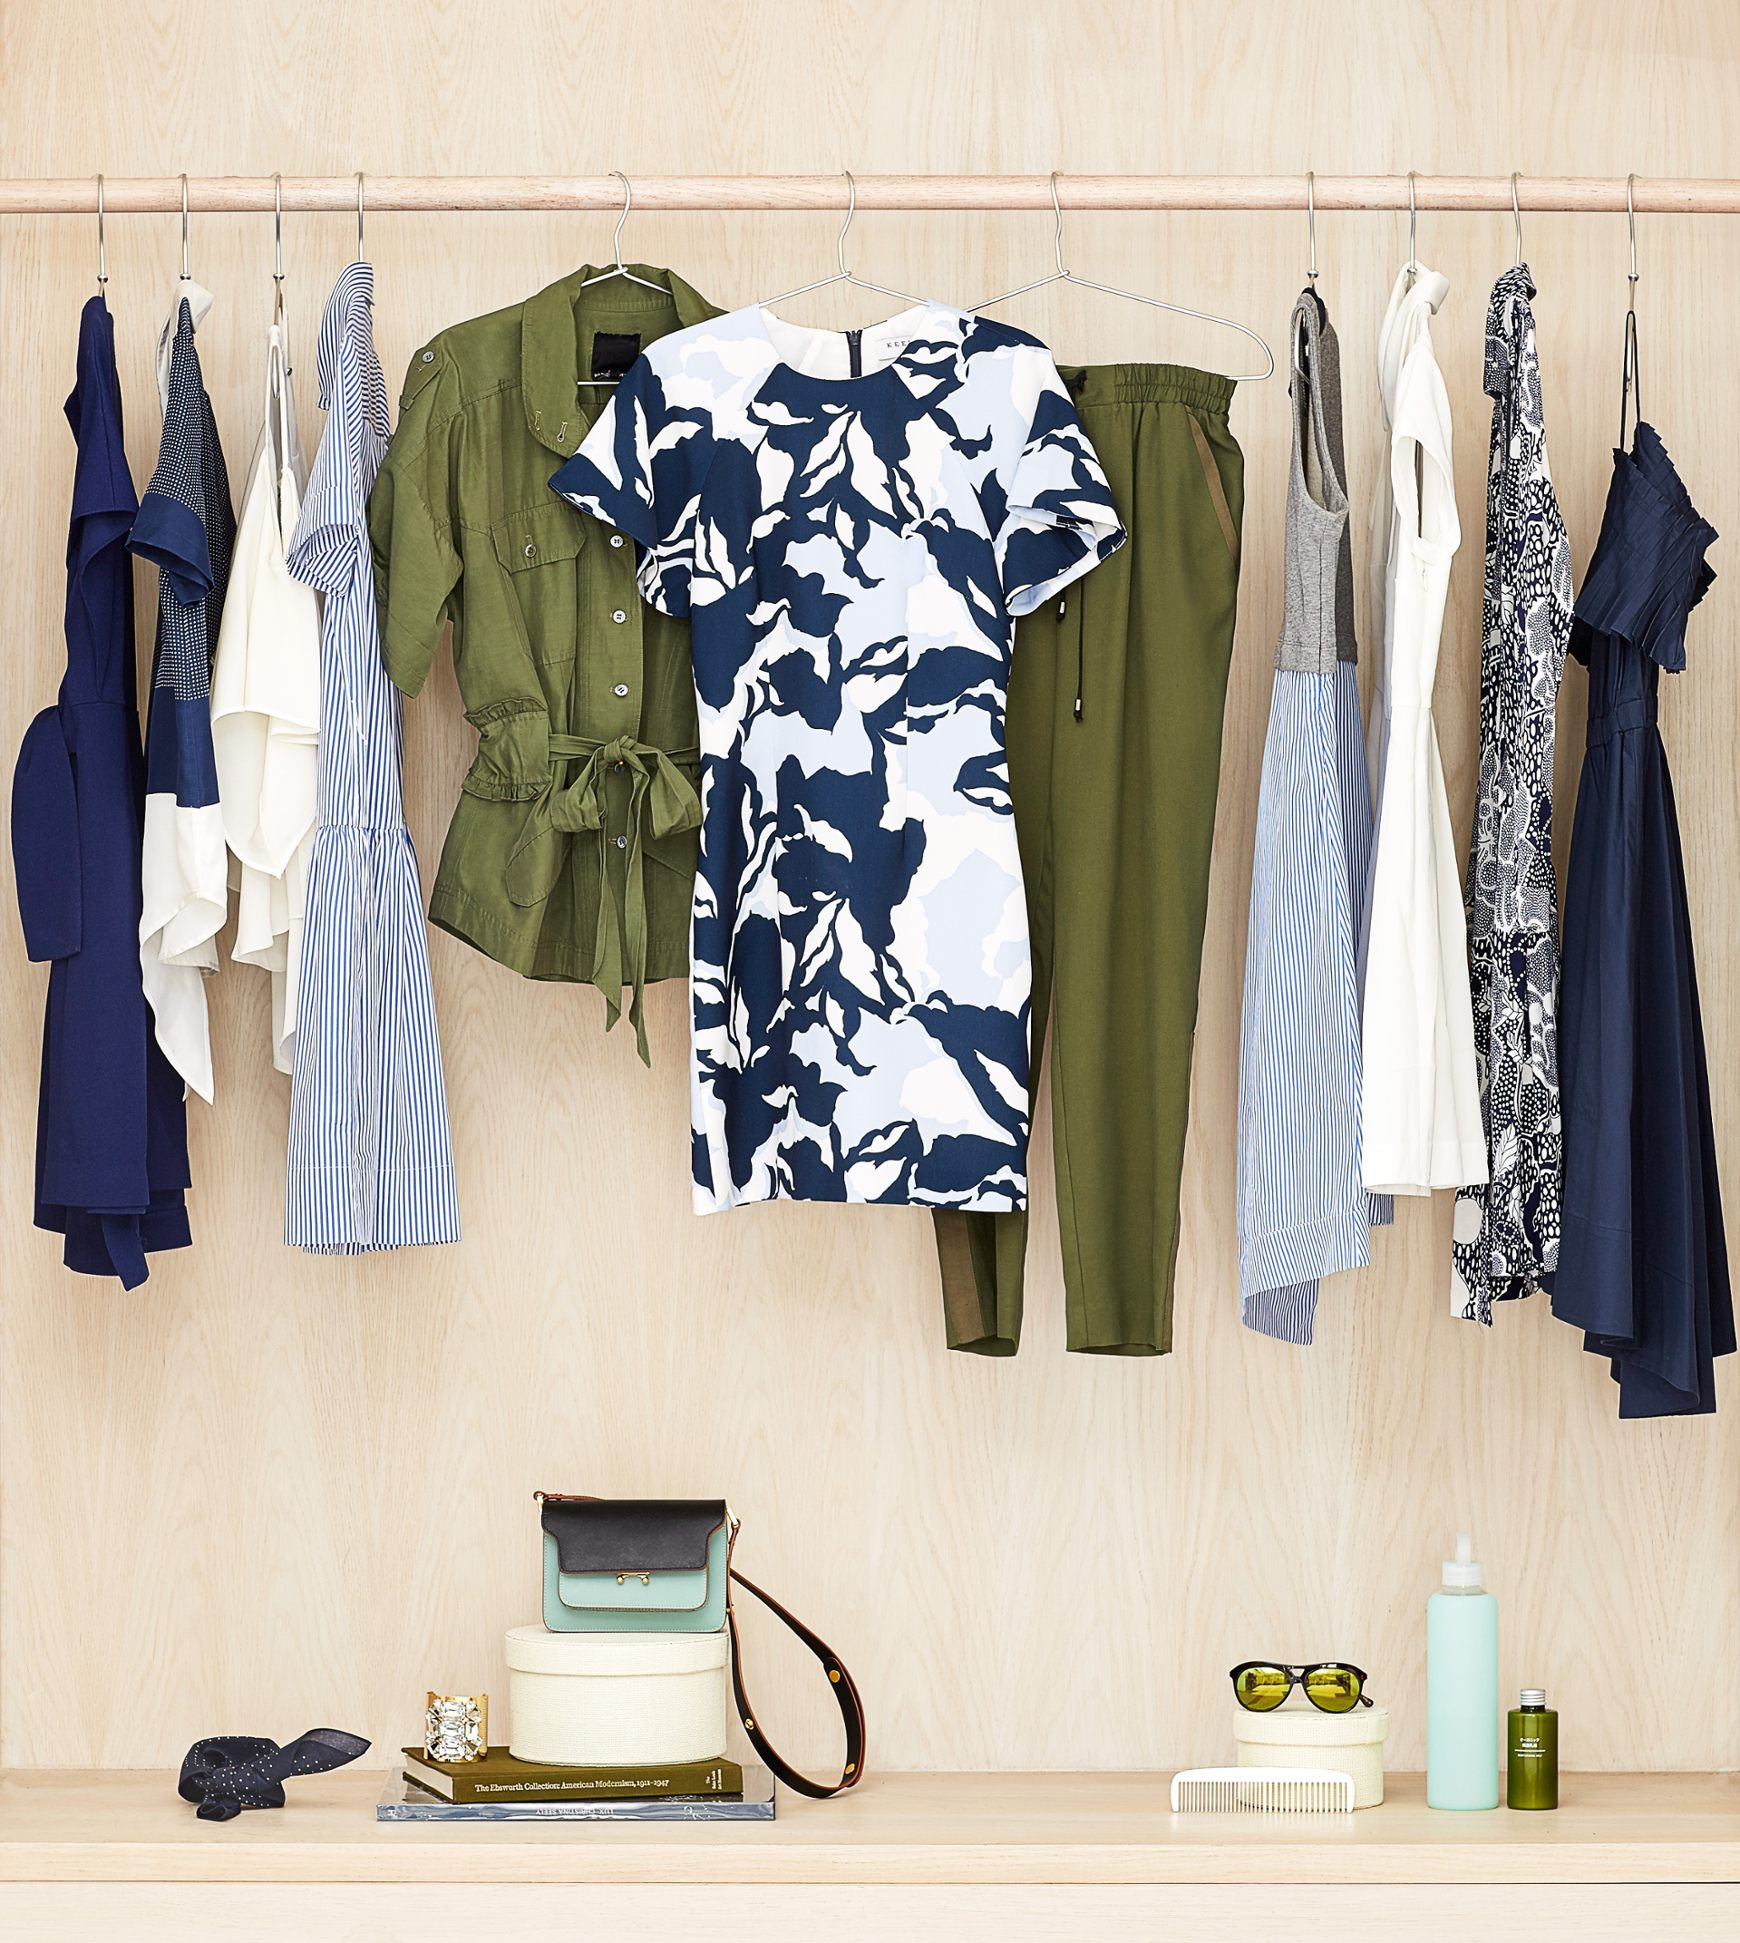 Rent the Runway's outfit selections